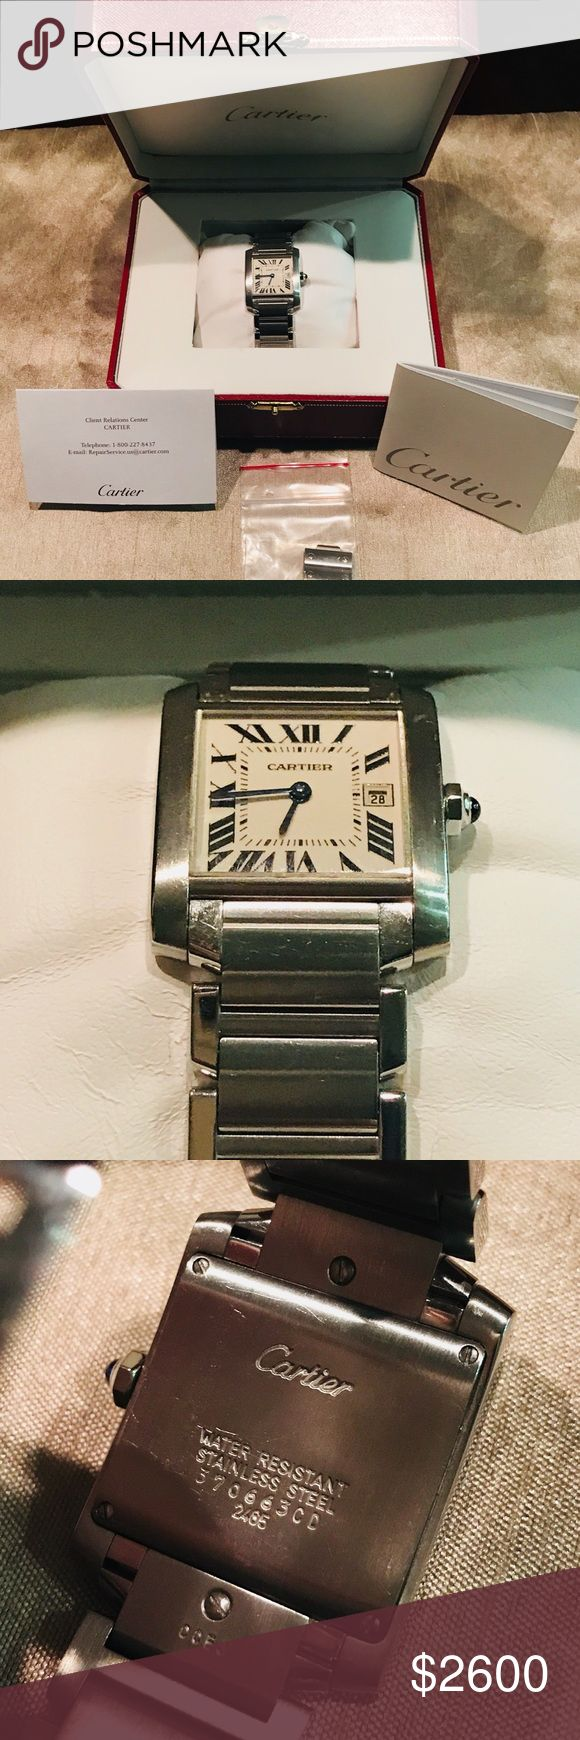 This new fish cleaning station was built in 2010 the stainless steel - Ladies Cartier Tank Francaise Ss Midsize 2465 Date Excellent Condition Ladie S Cartier Tank Francaise Midsize Stainless Steel 2465 Date Watch